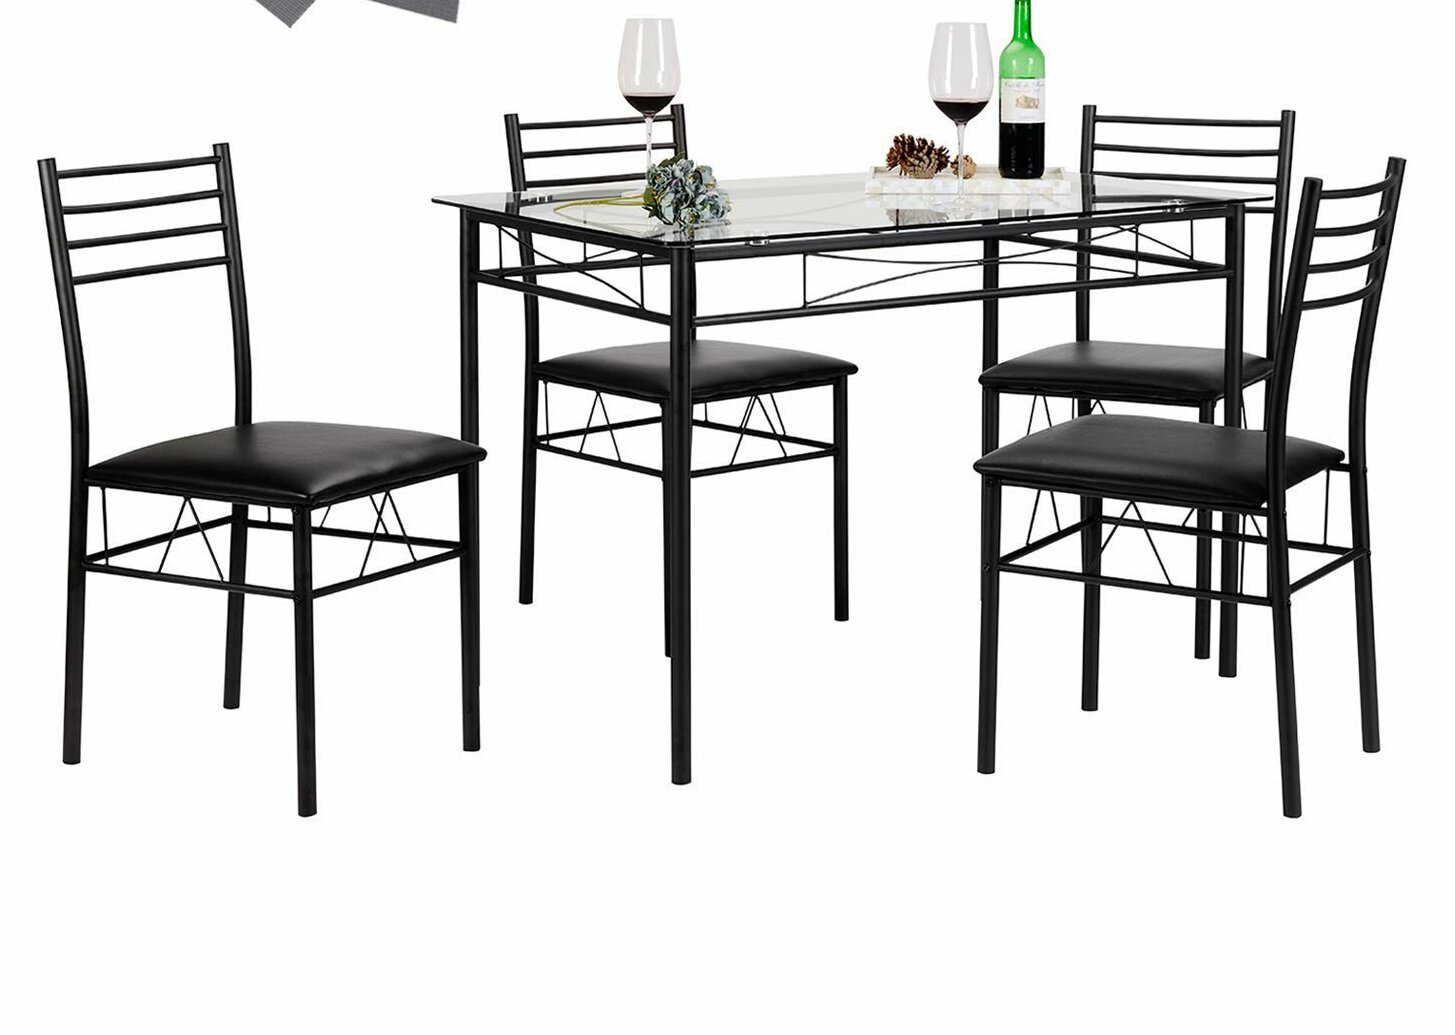 Inspiration about Recent Ebern Designs Lightle 5 Piece Breakfast Nook Dining Set & Reviews Intended For Taulbee 5 Piece Dining Sets (#12 of 20)